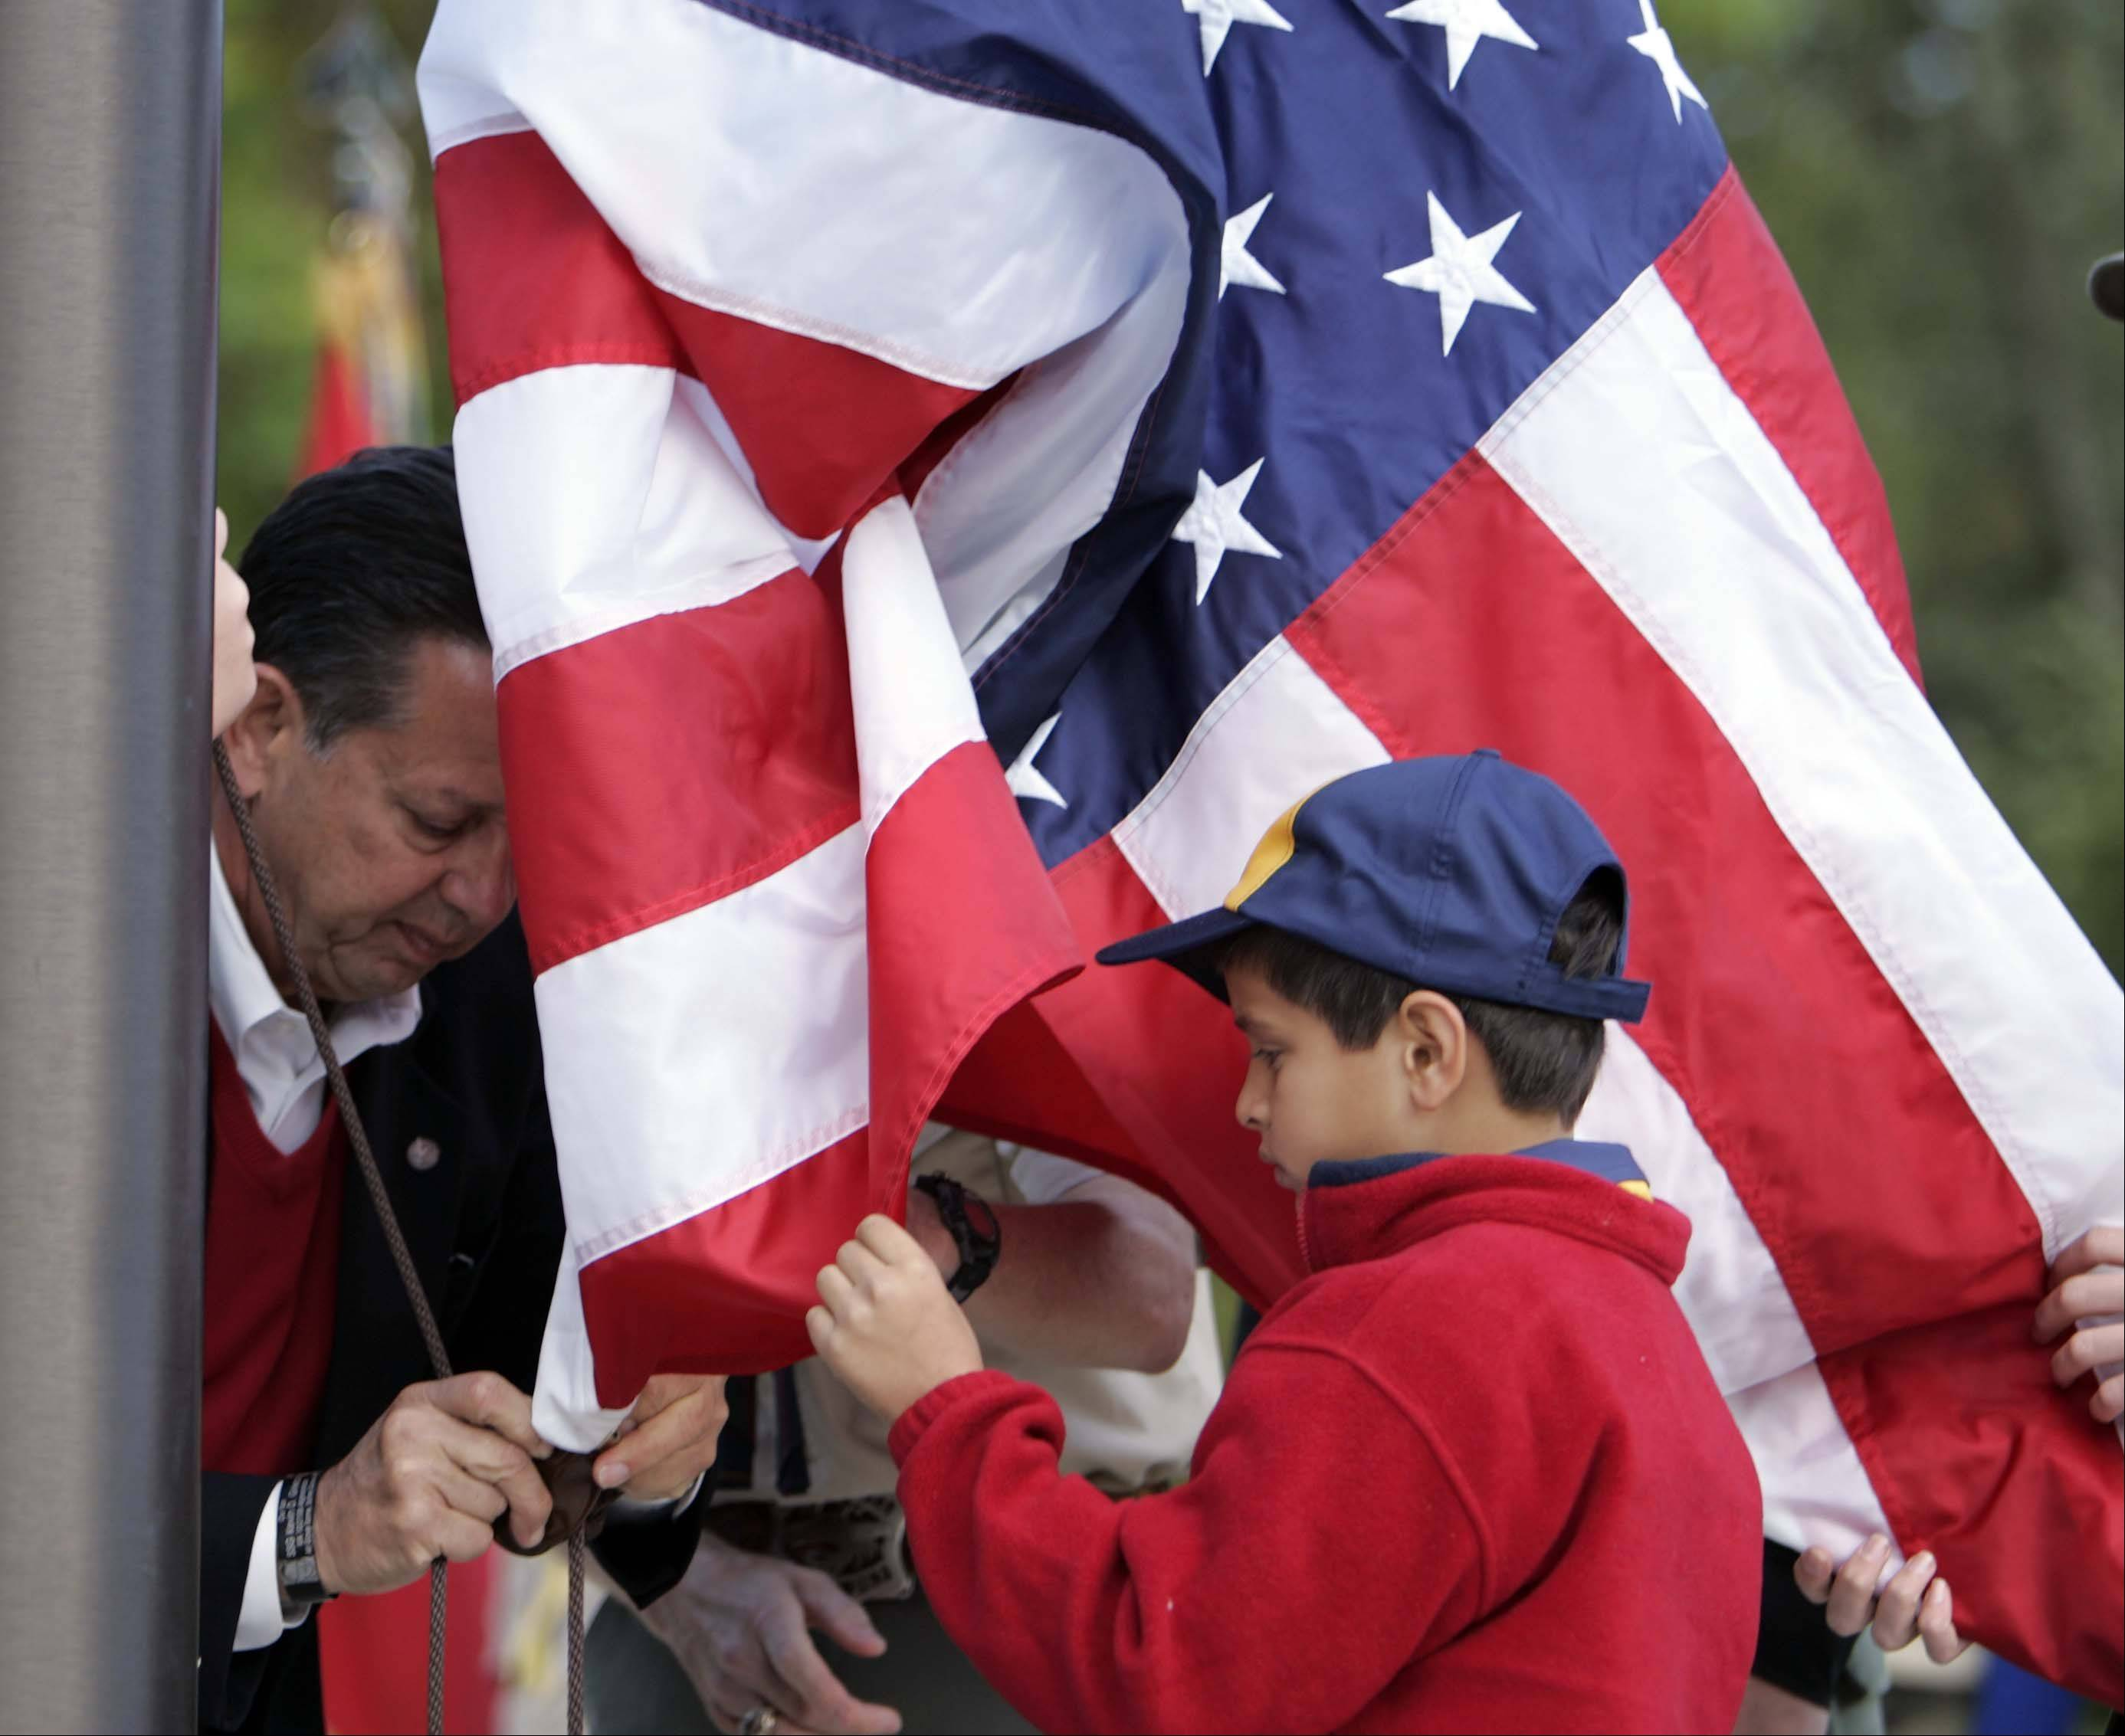 BRIAN HILL/bhill@dailyherald.comRalph Grieco (father of Kevin) helps his grandson Joshua, 8, attach and raise the American flag during the ceremony. The Three Fires Council-Boy Scouts of America honor Eagle Scout and Illinois National Guardsman Kevin D. Grieco with a plaque and flagpole dedication at Camp Big Timber in Elgin Saturday September 22, 2012. Grieco who was an assistant scout master to Troop 575 in Winfield was killed in Afghanistan in 2008.